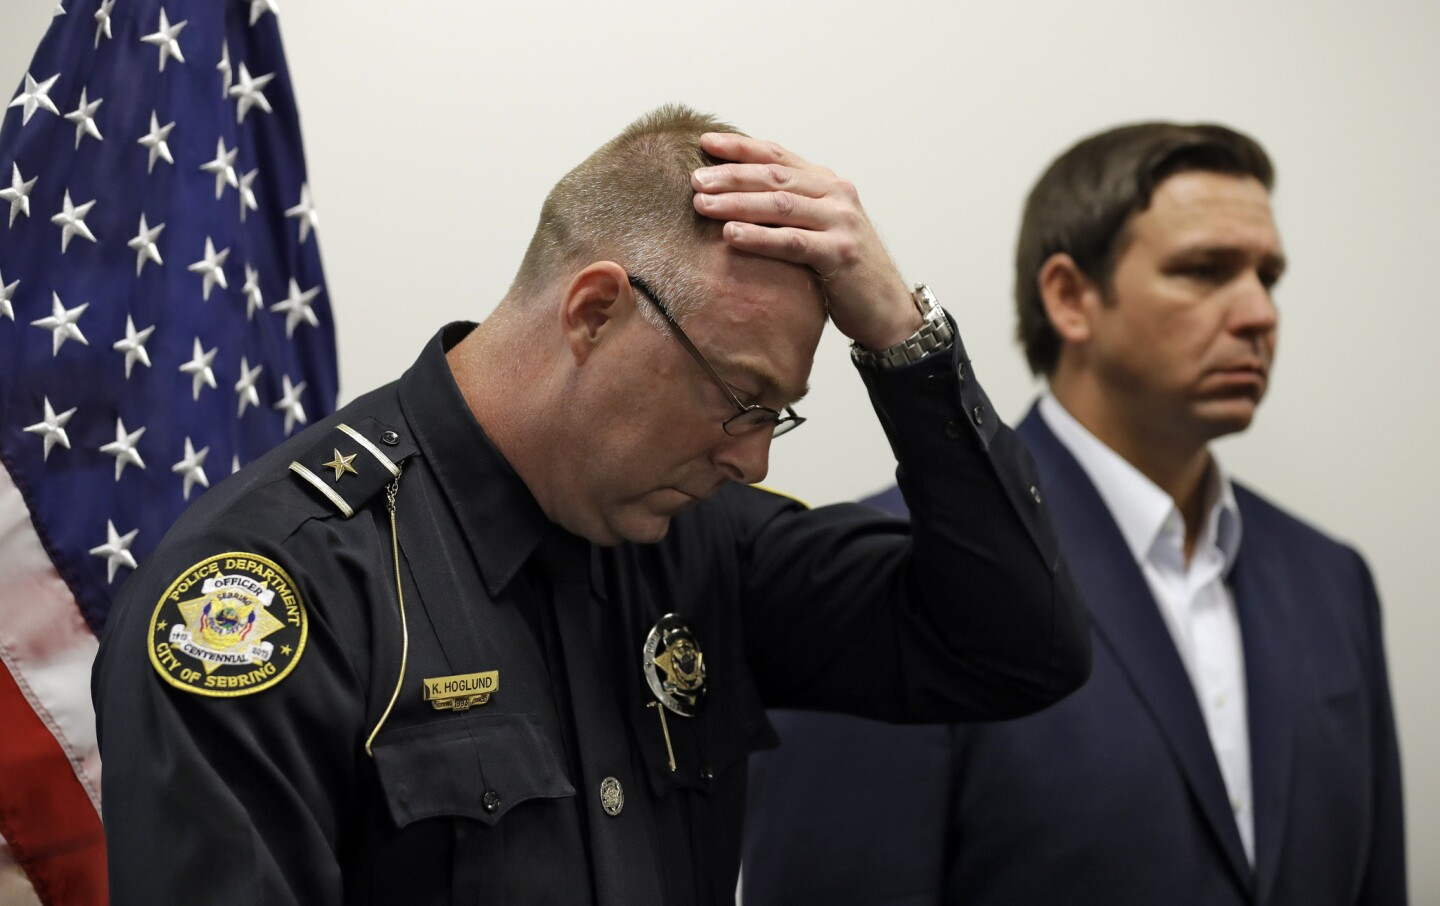 Sebring, Fla., police chief Karl Hoglund wipes his head as he listens to Florida Gov. Ron DeSantis speak during a news conference, on Jan. 23, 2019, in Sebring, Fla., after authorities said five people were shot and killed at a SunTrust bank branch.